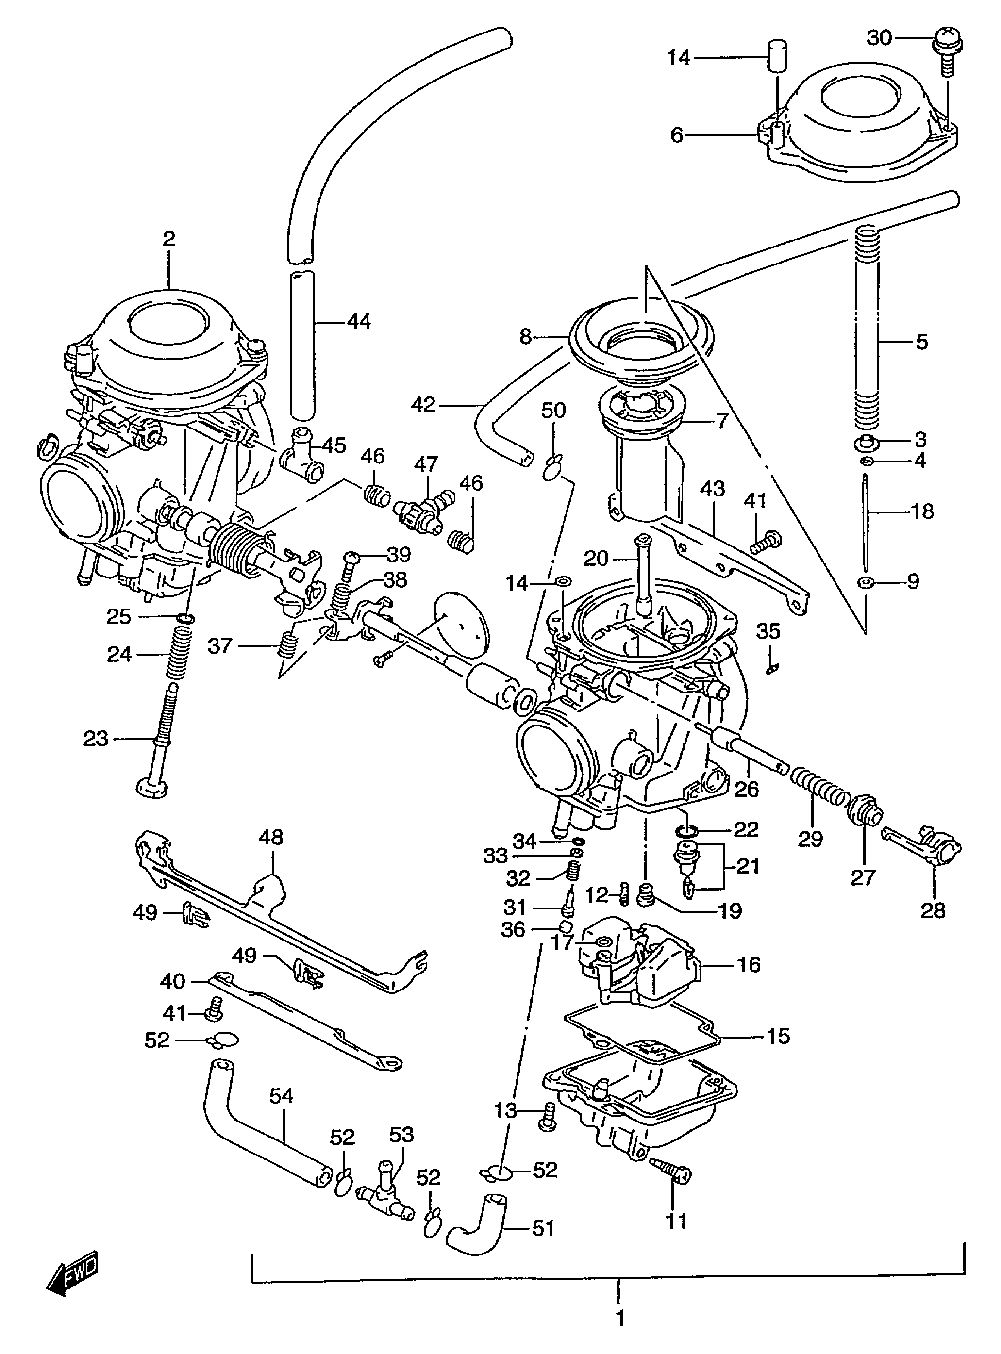 [WRG-1835] F650 Engine Diagram